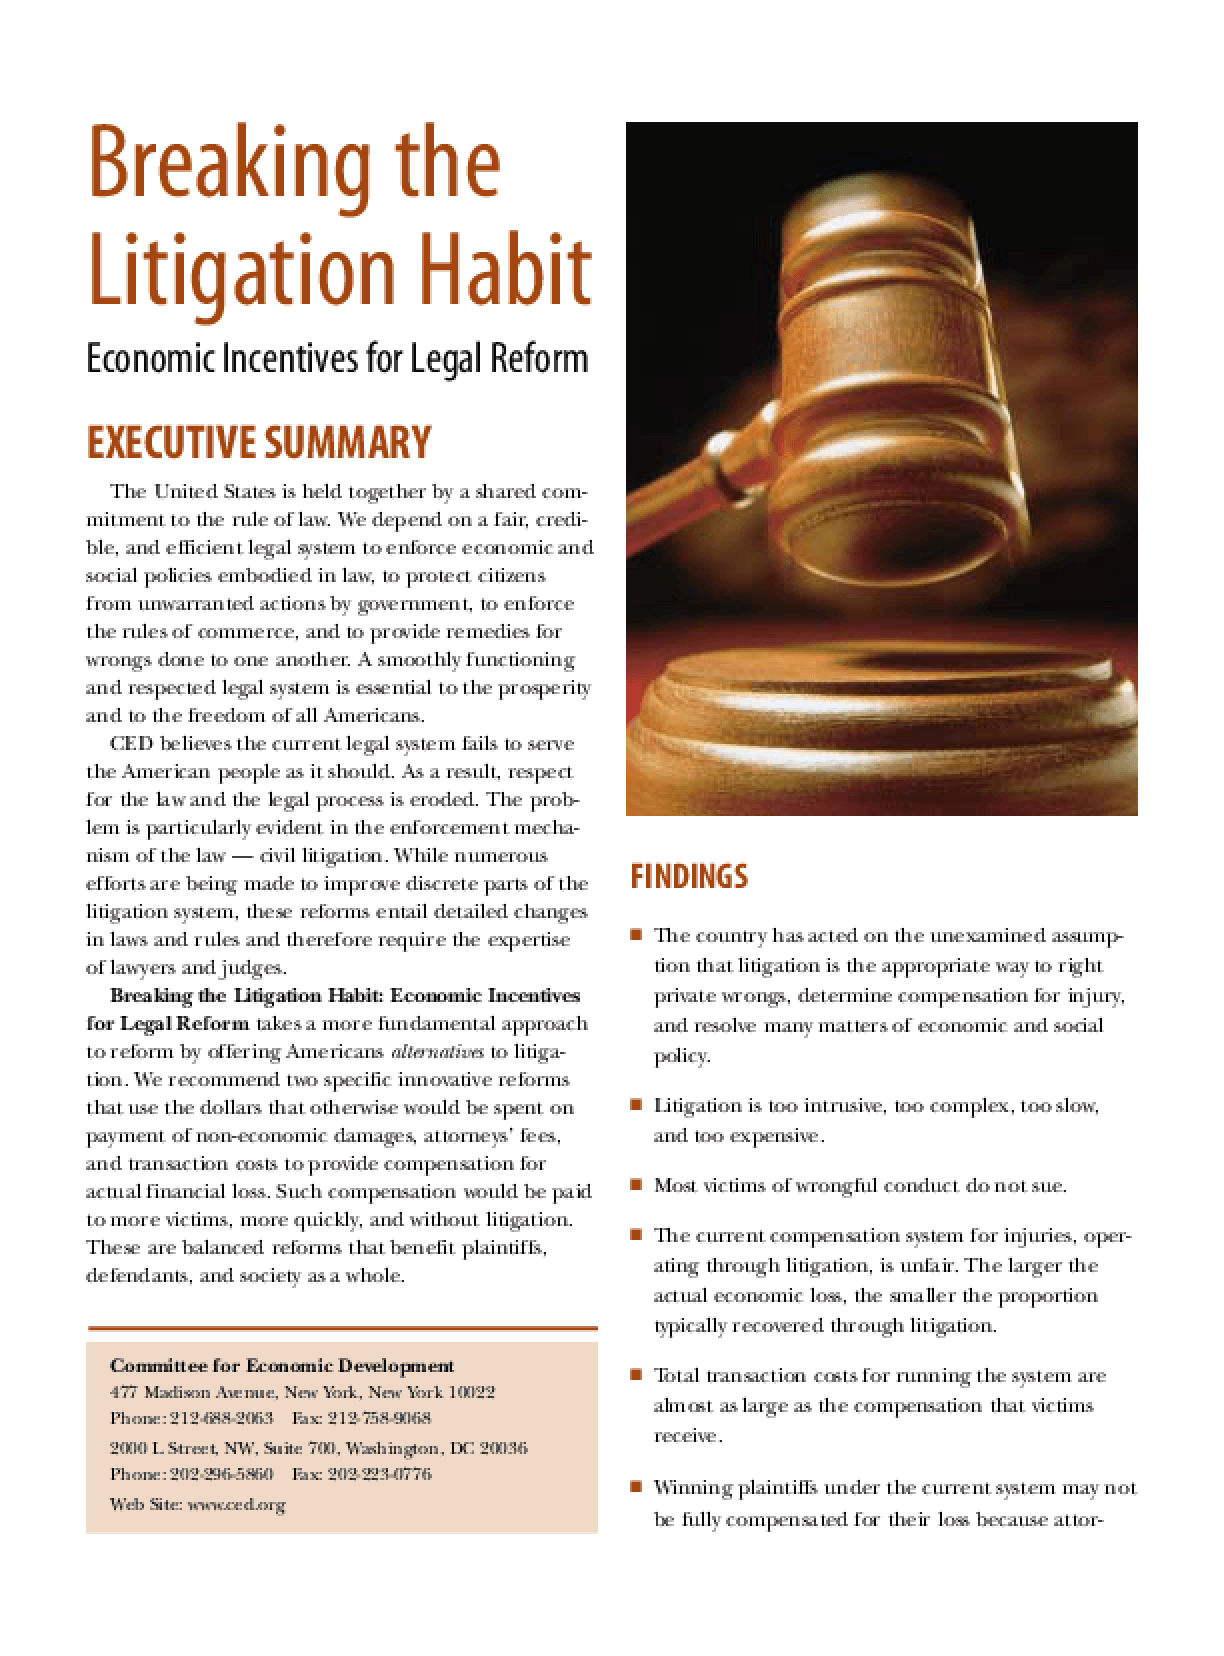 Breaking the Litigation Habit: Economic Incentives for Legal Reform - Executive Summary